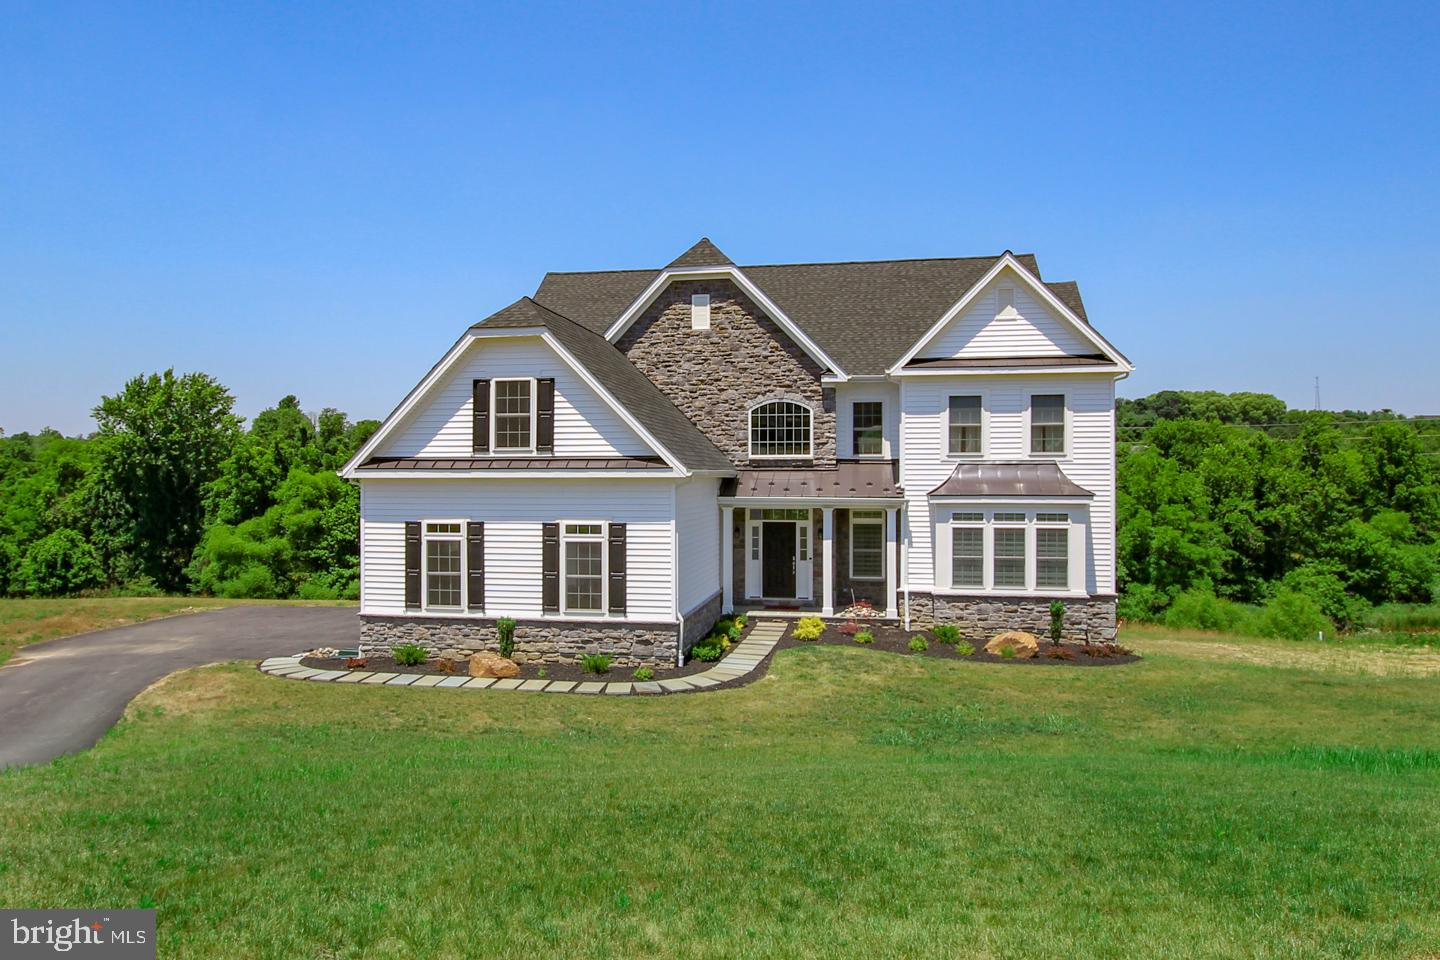 008 OLD FORGE ROAD, MEDIA, PA 19063